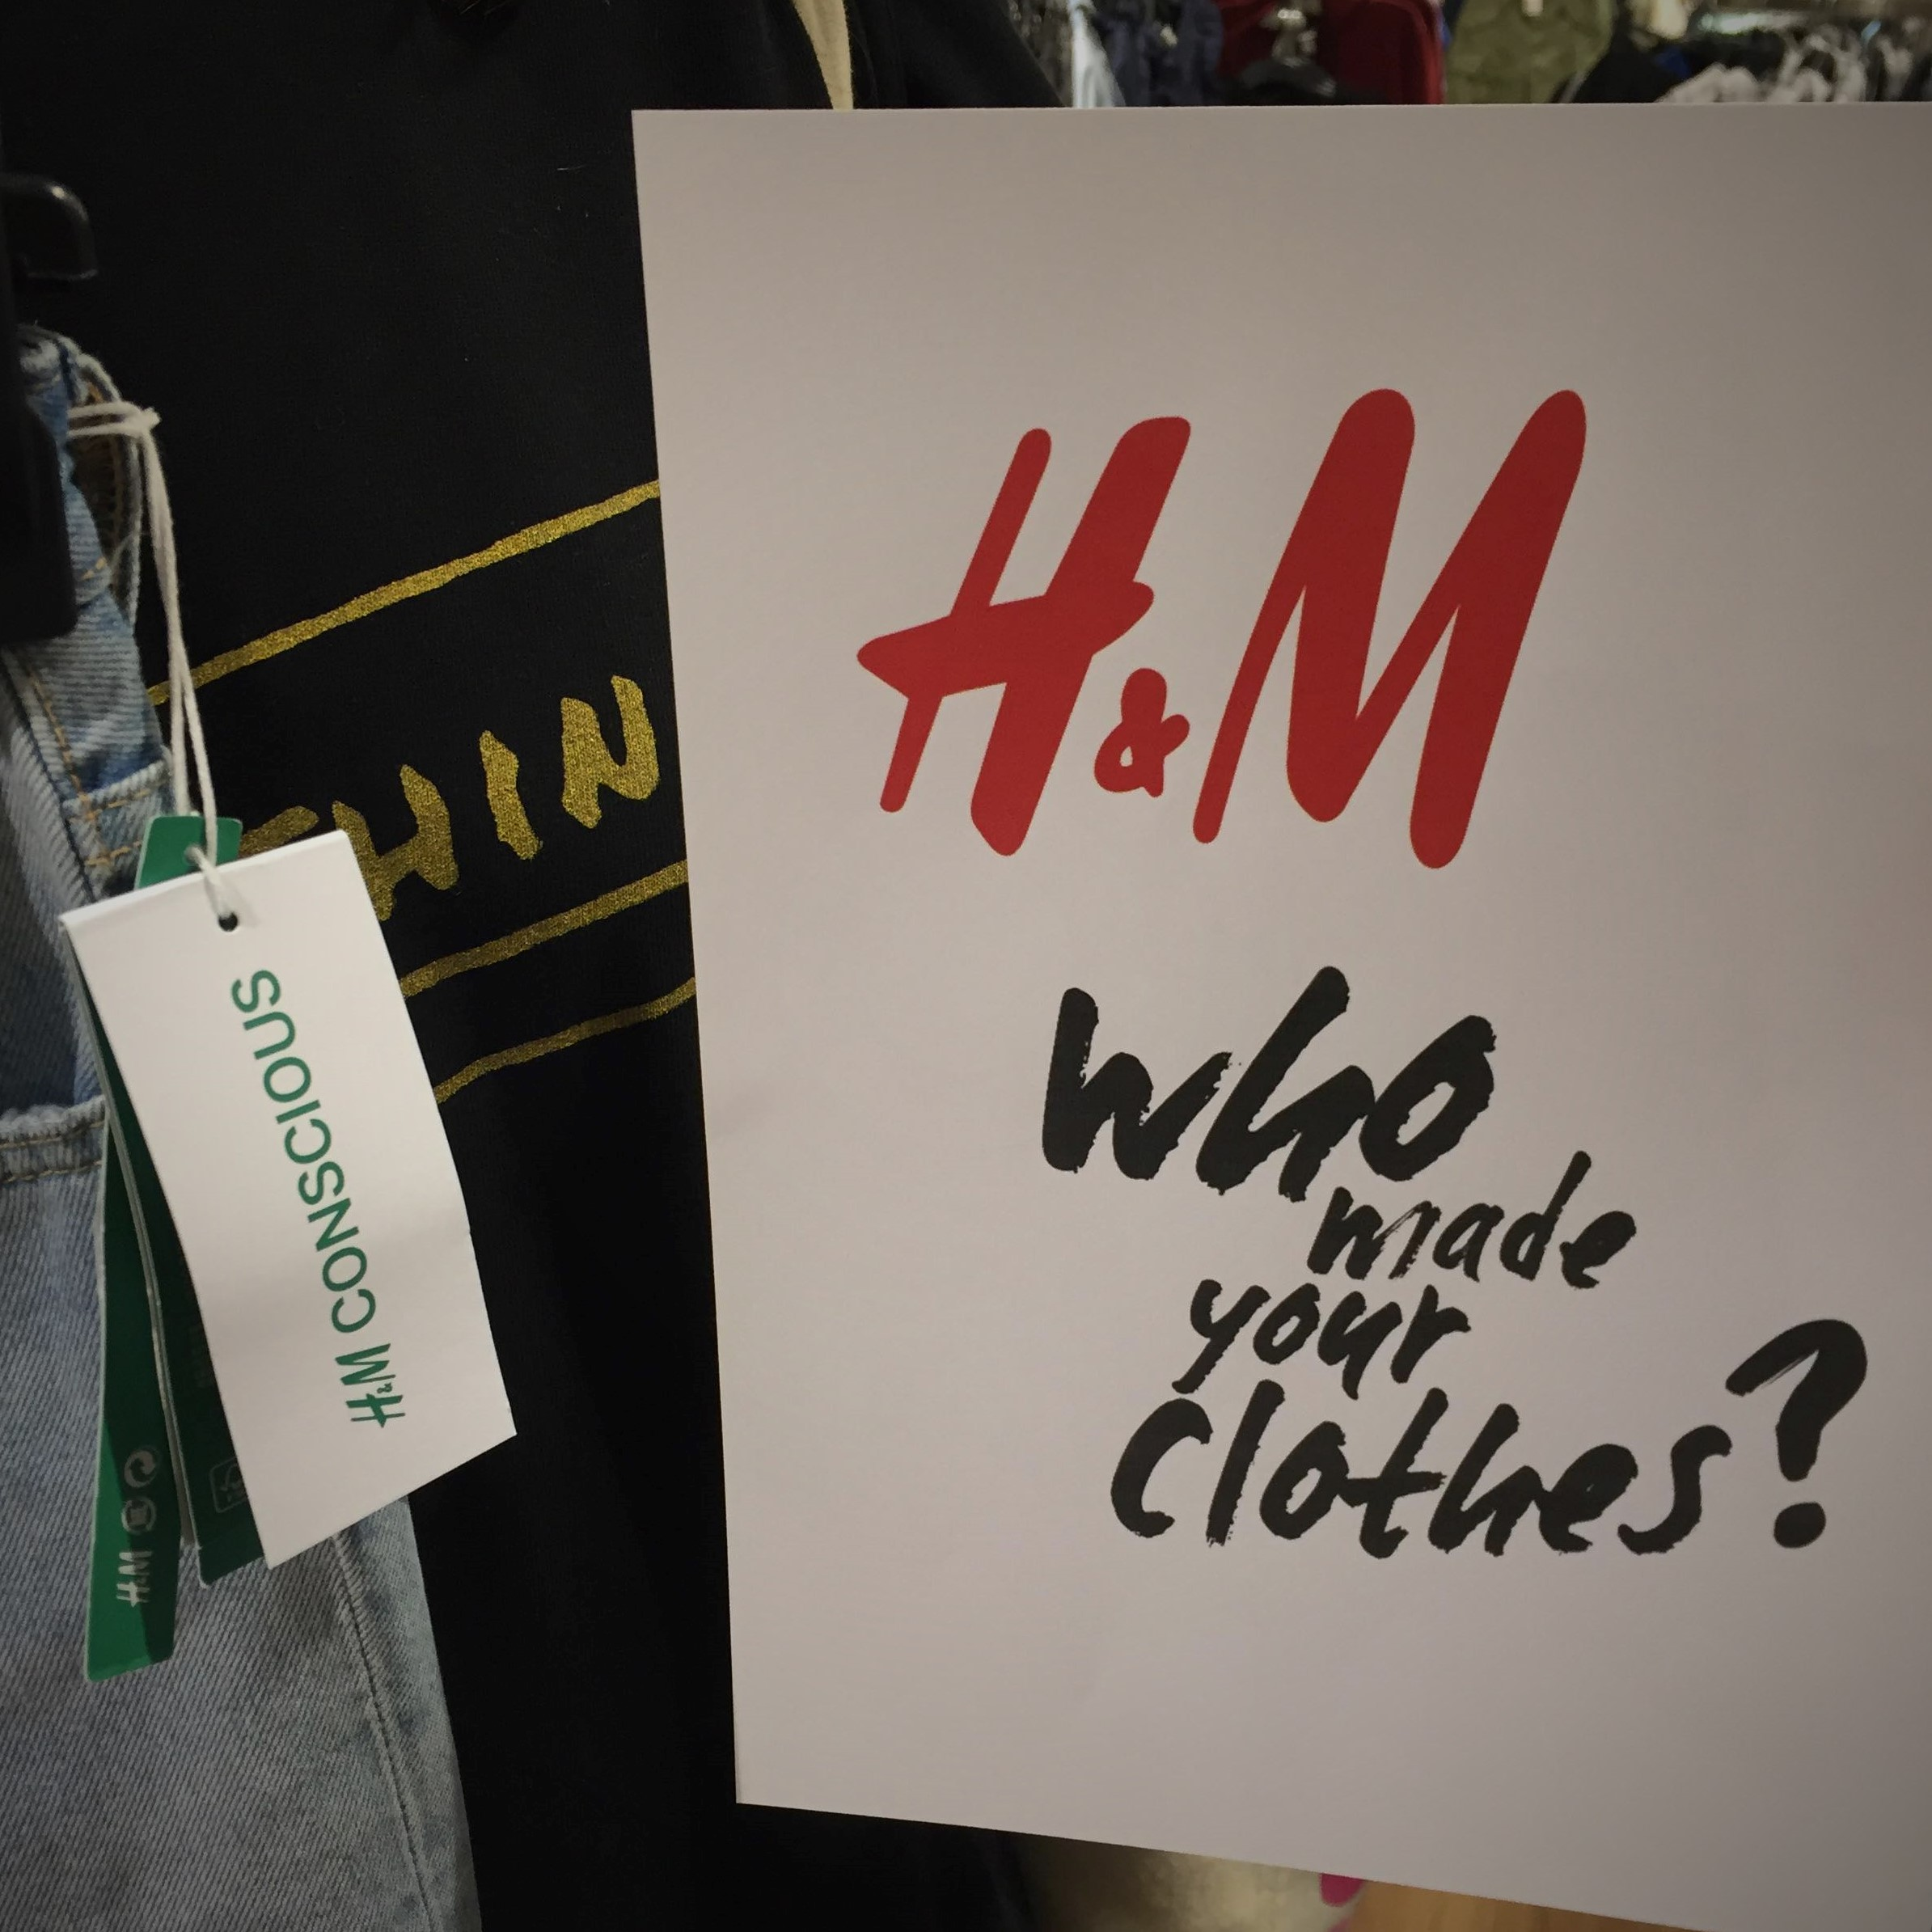 HM-whomadeyourclothes7.jpg